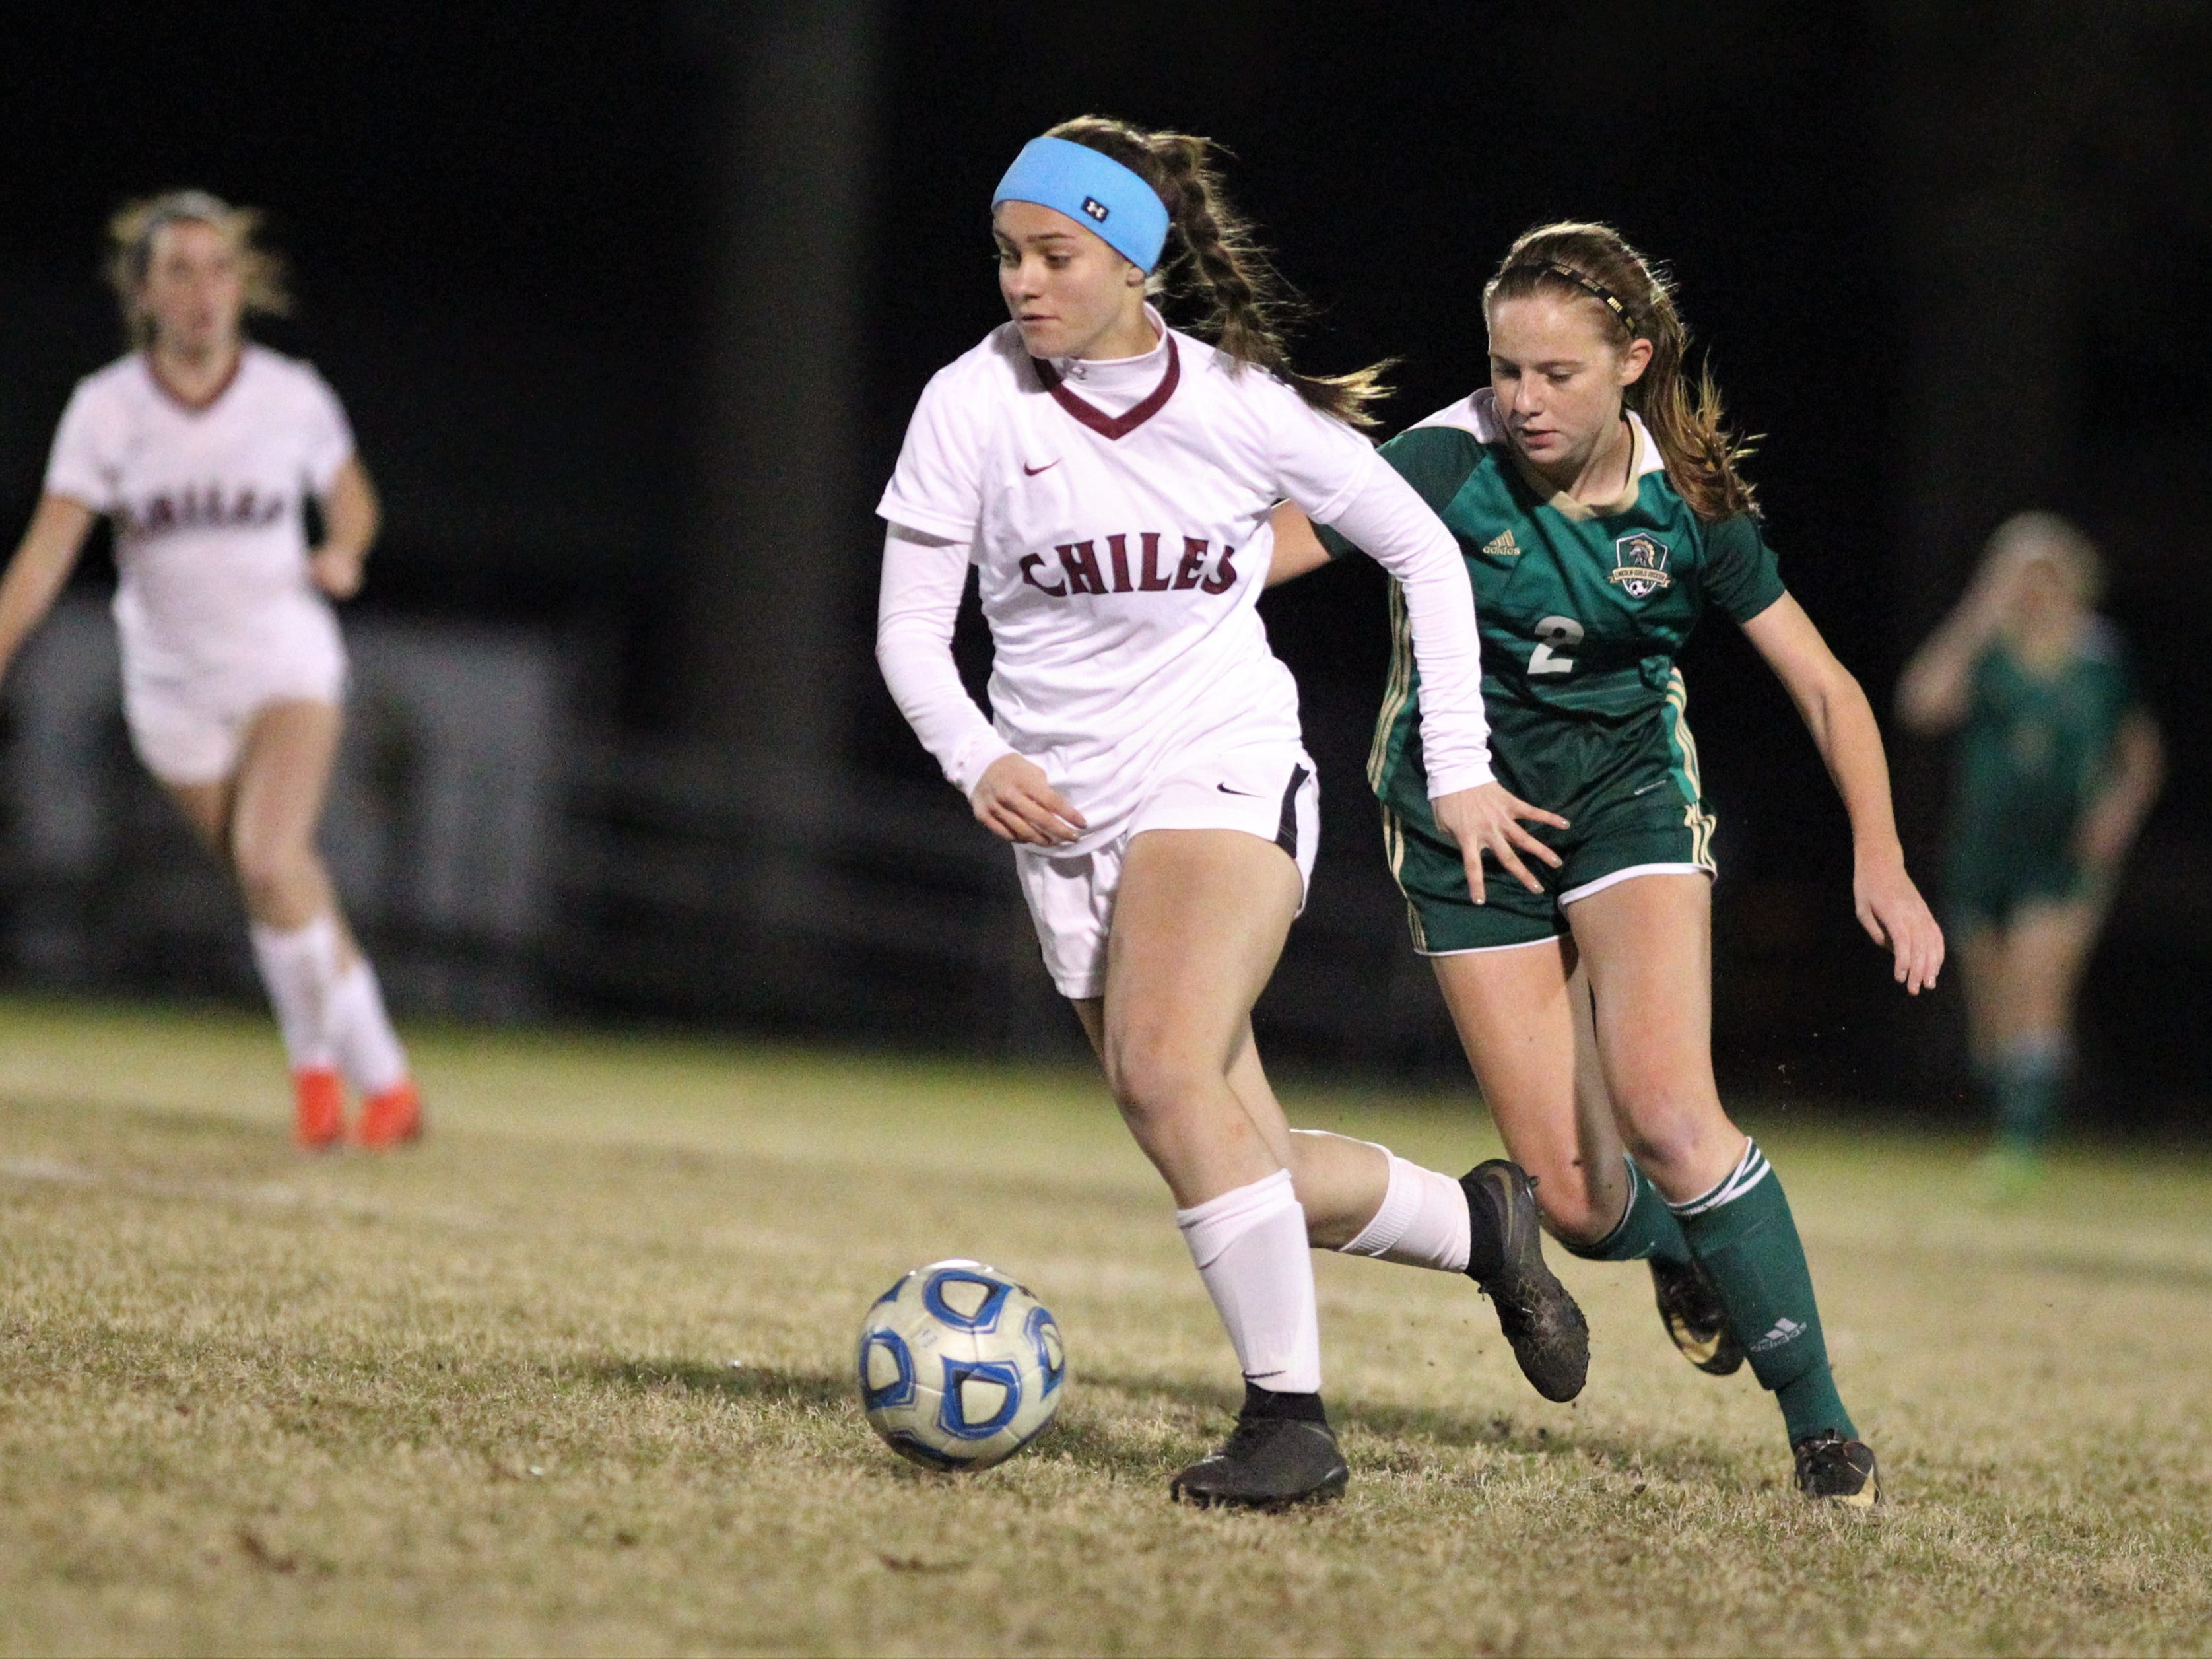 Chiles' Emily Ferris dribbles up the field as Lincoln's Chase Merrick chases. Lincoln beat Chiles 2-1 on Jan. 9, 2019.